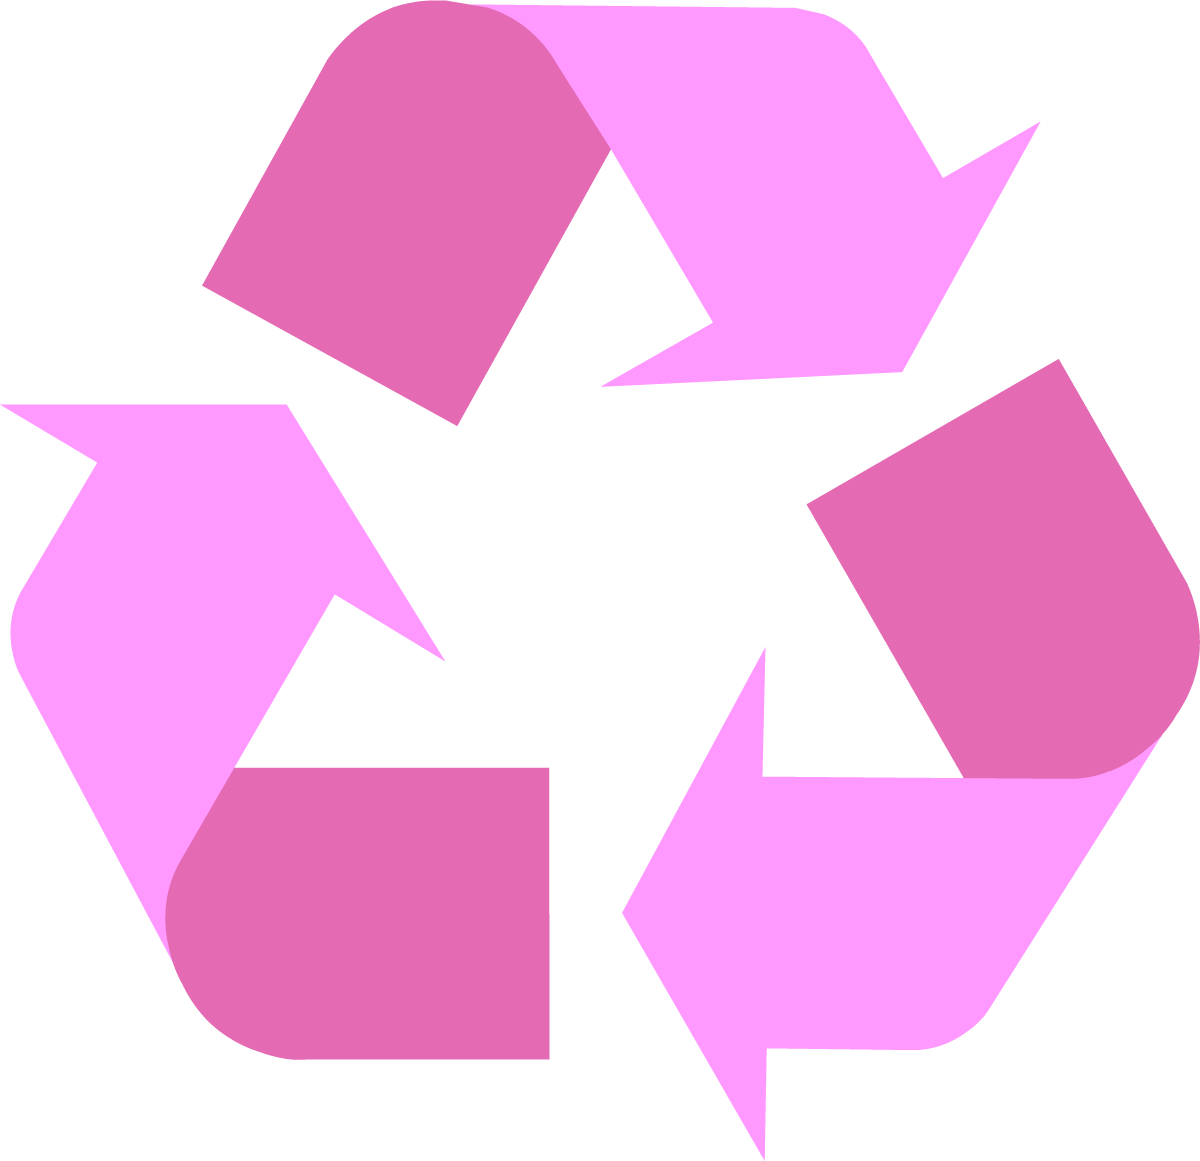 Pin By Recycling Com On Universal Recycling Symbol